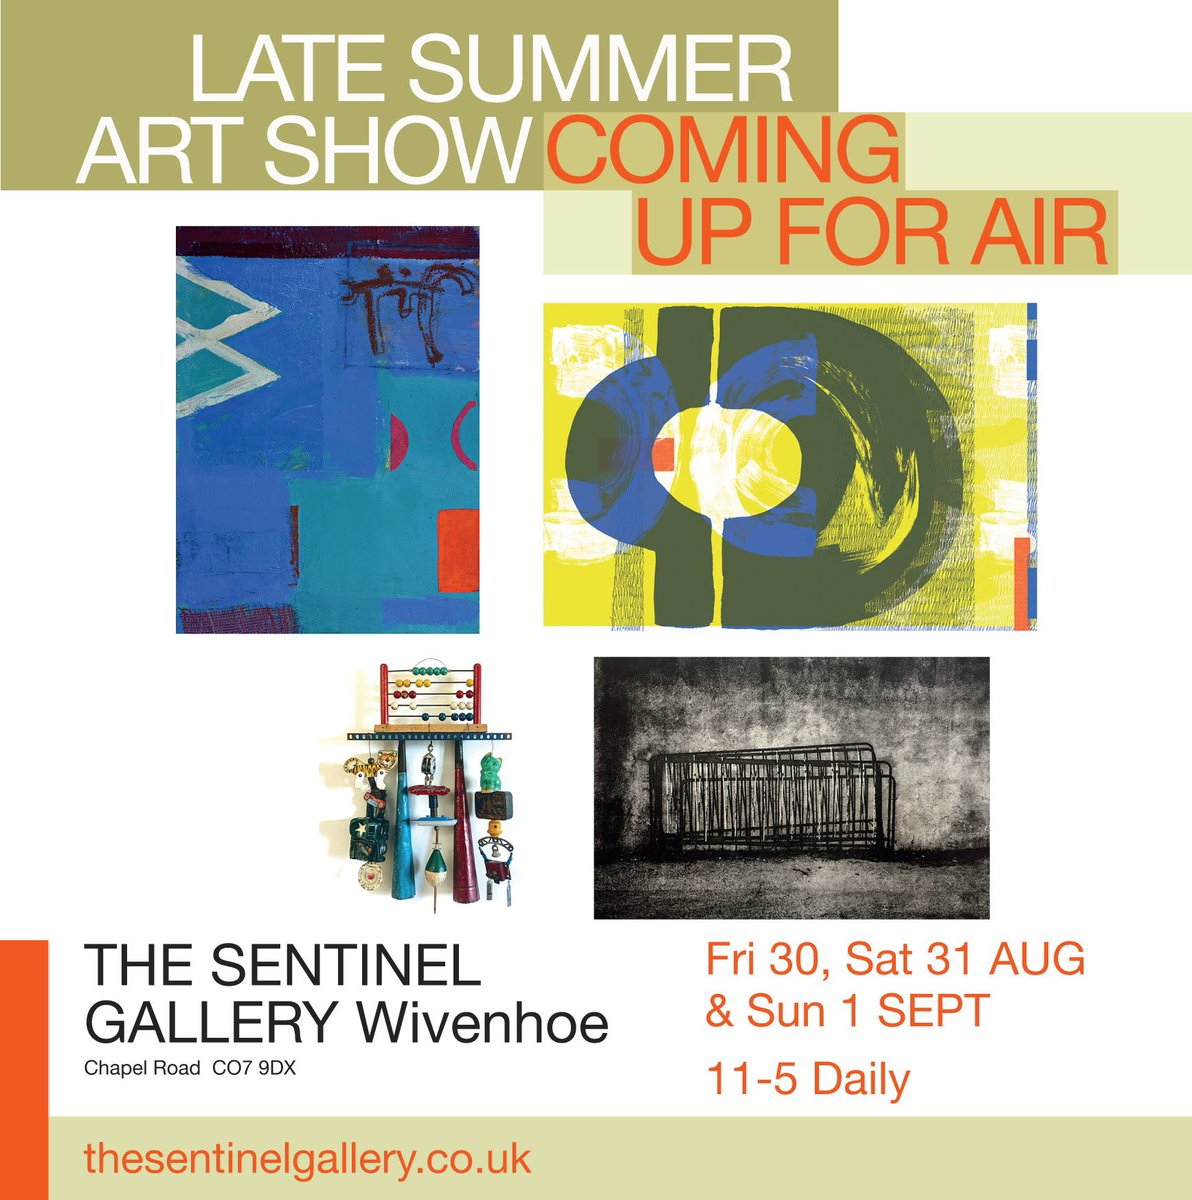 I'll be part of this group art show in #wivenhoe at the end of August. Come and meet us! <br>http://pic.twitter.com/Eeepa0t7Km